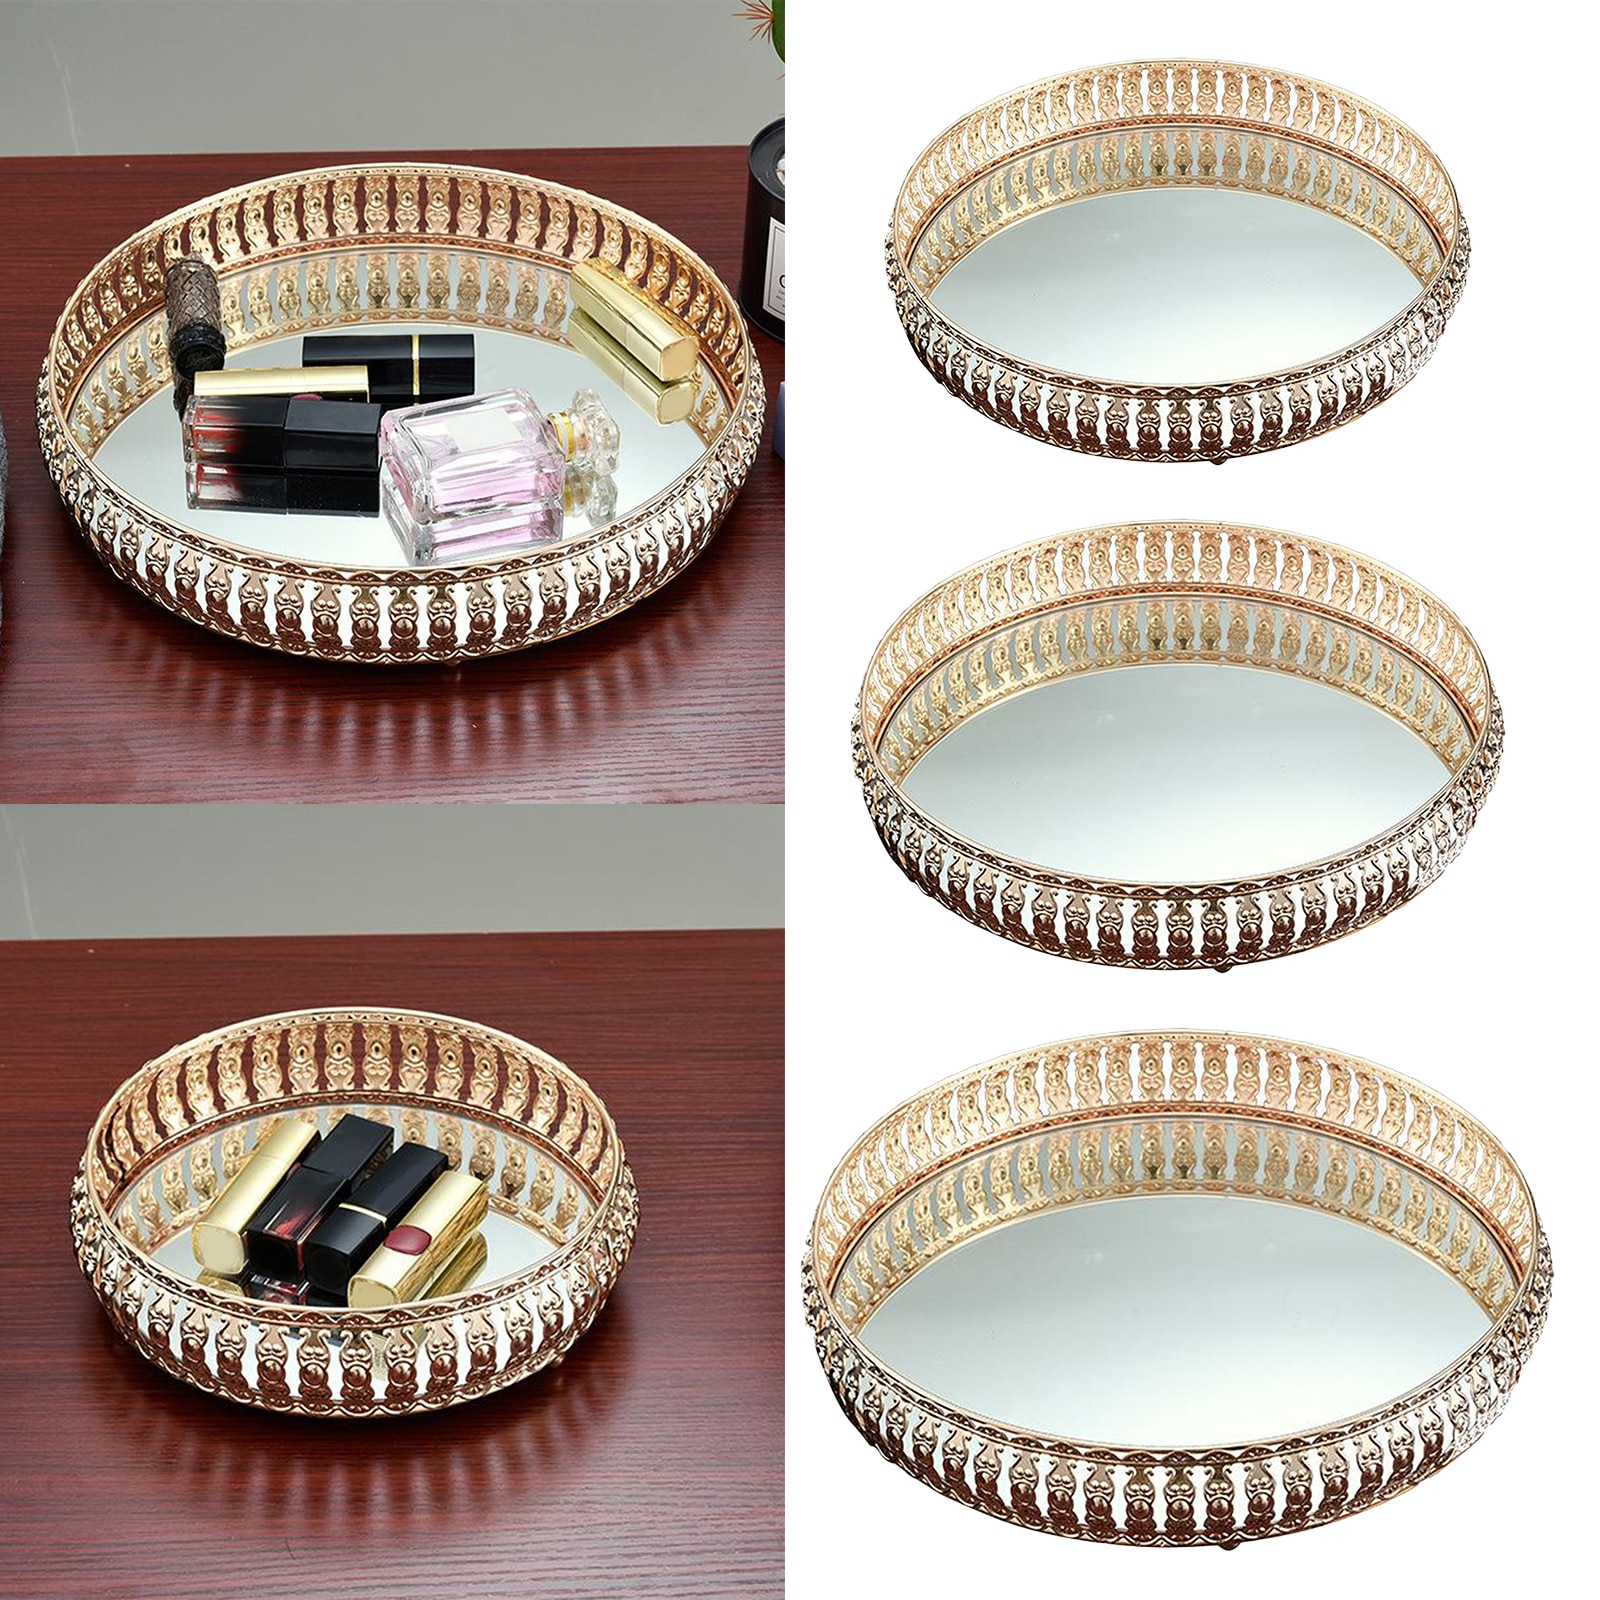 Vintage European Glass Metal Storage Tray Gold Round Dotted Fruit Plate Desktop Small Items Jewelry Display Tray Mirror